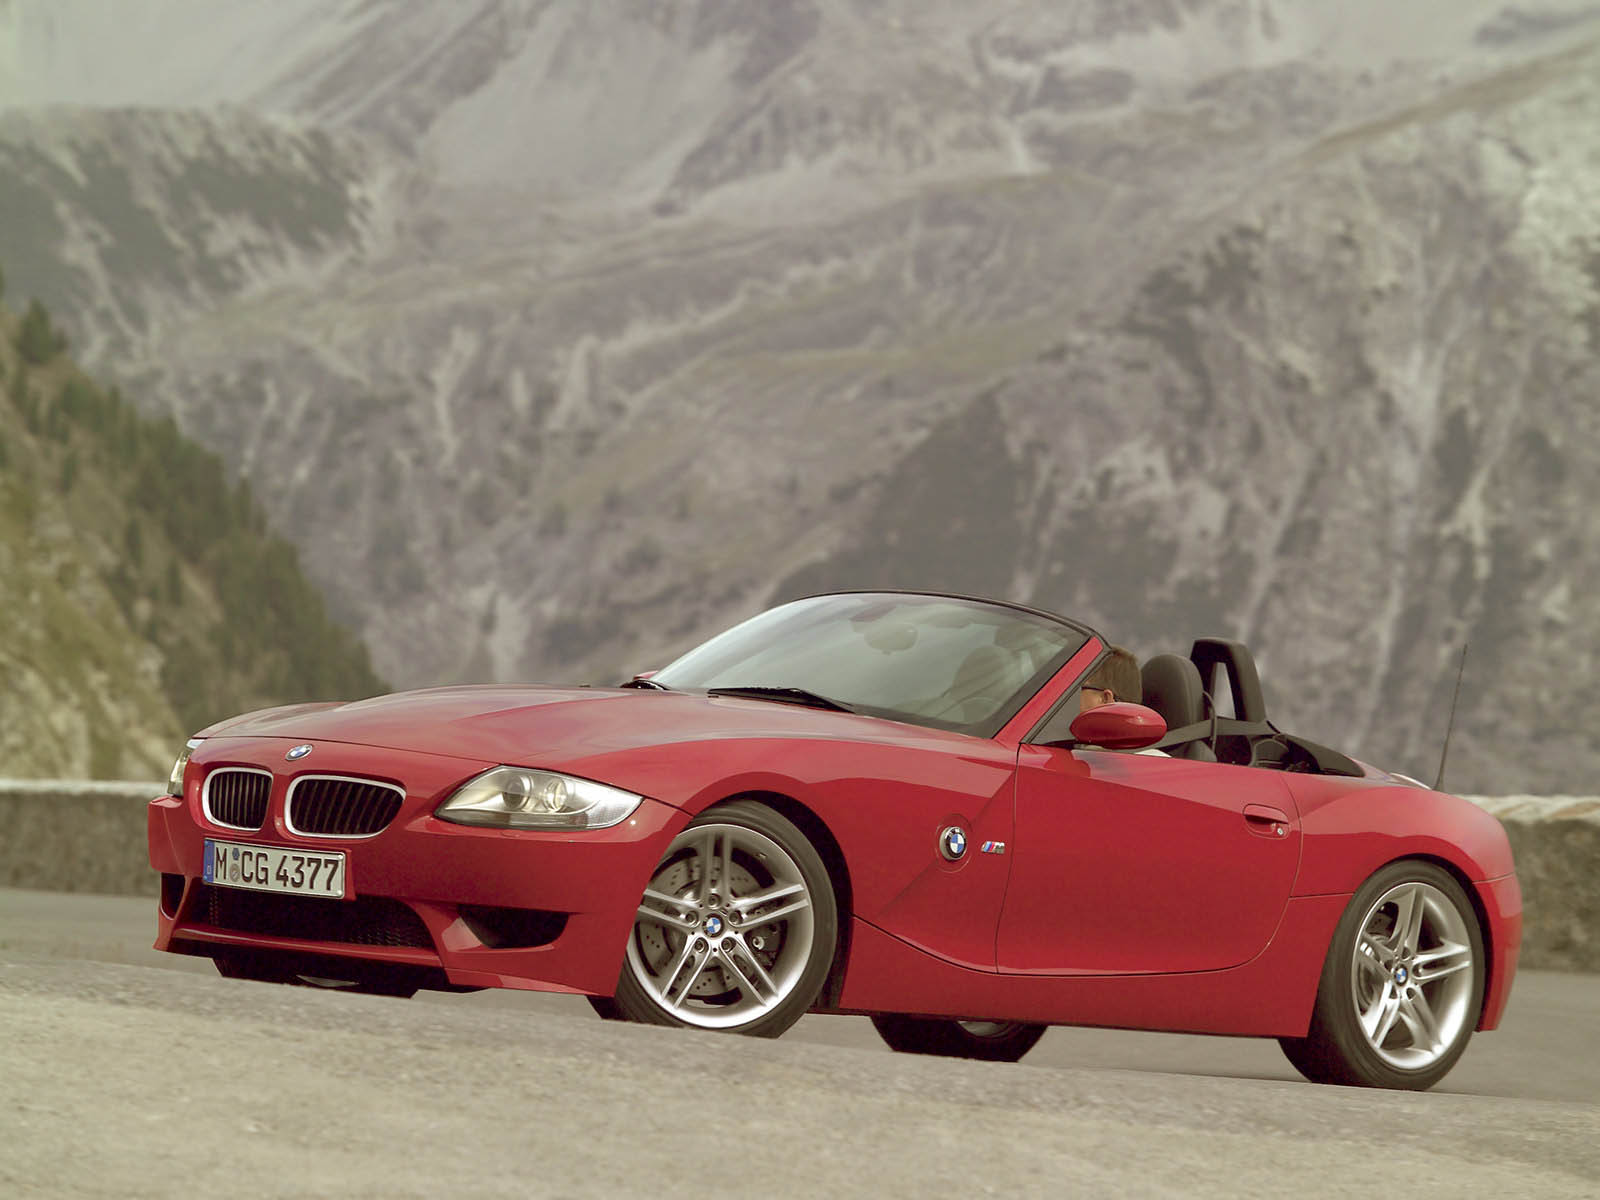 2006 Bmw Z4 M Roadster Review Supercars Net